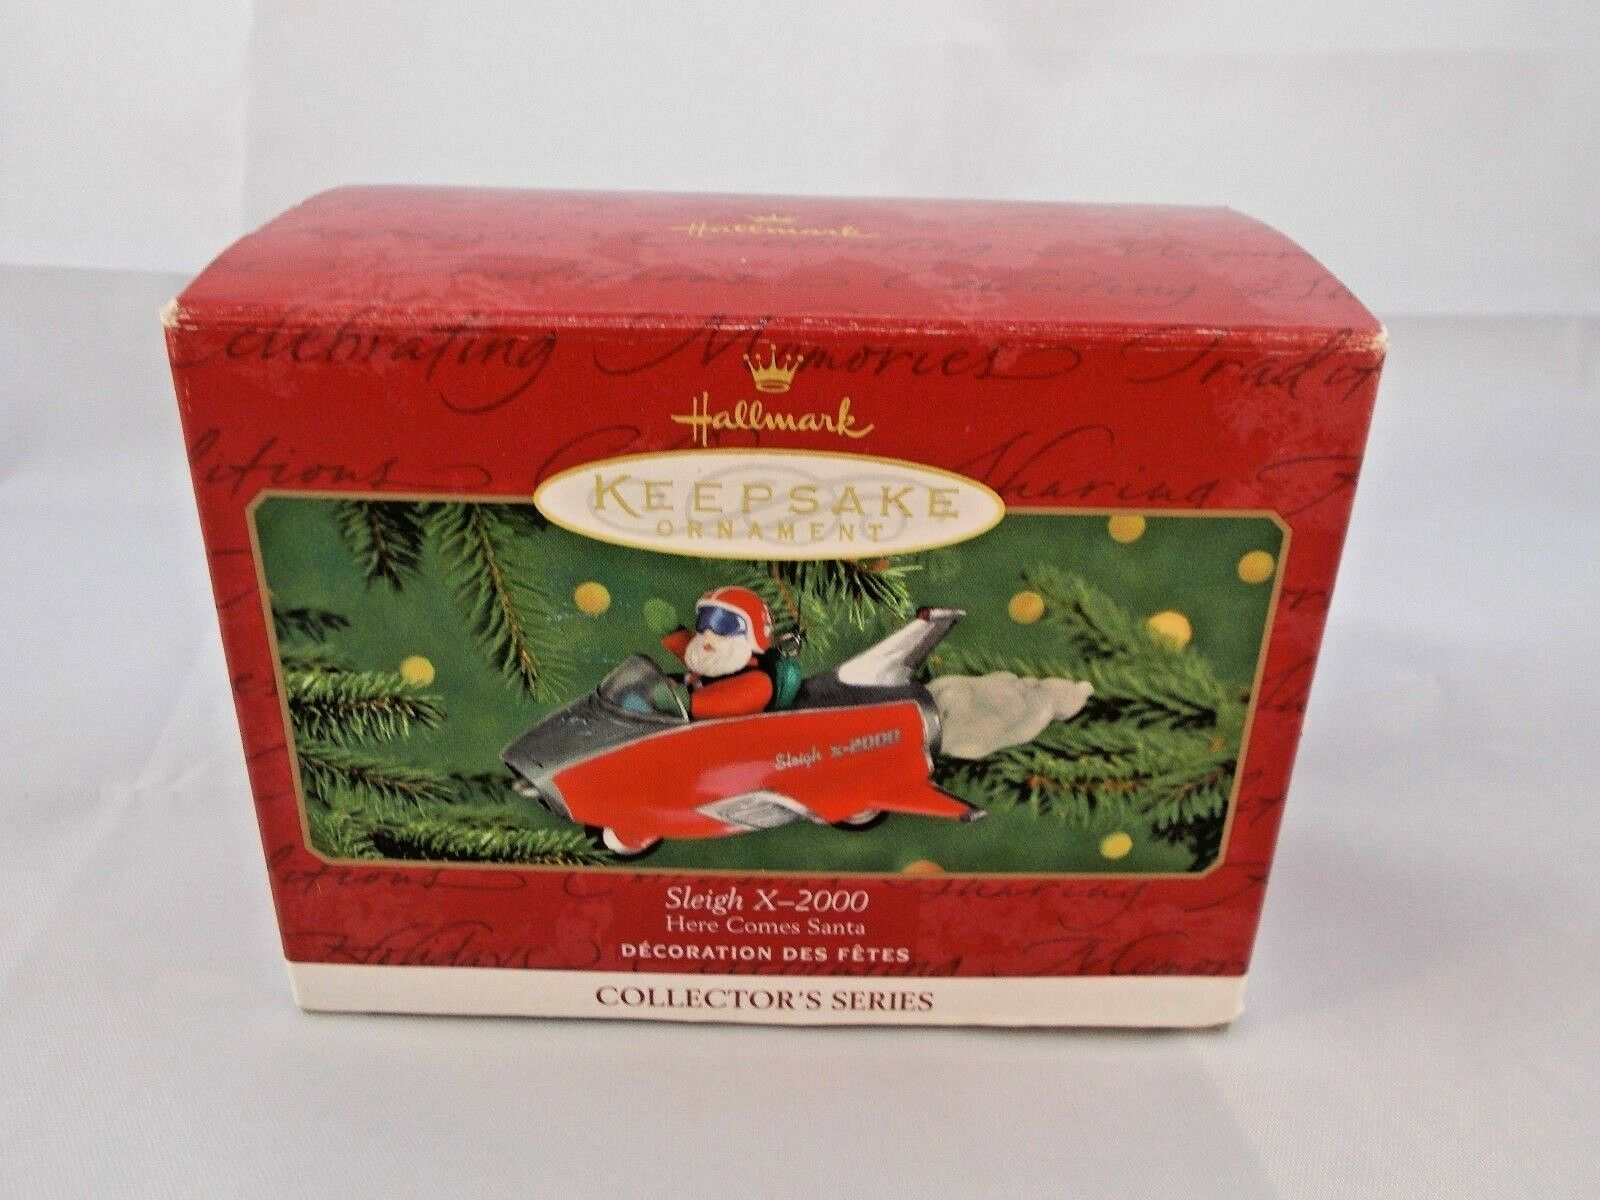 Primary image for Hallmark Keepsake Sleigh X-2000 Here Comes Santa Tree Ornament Christmas